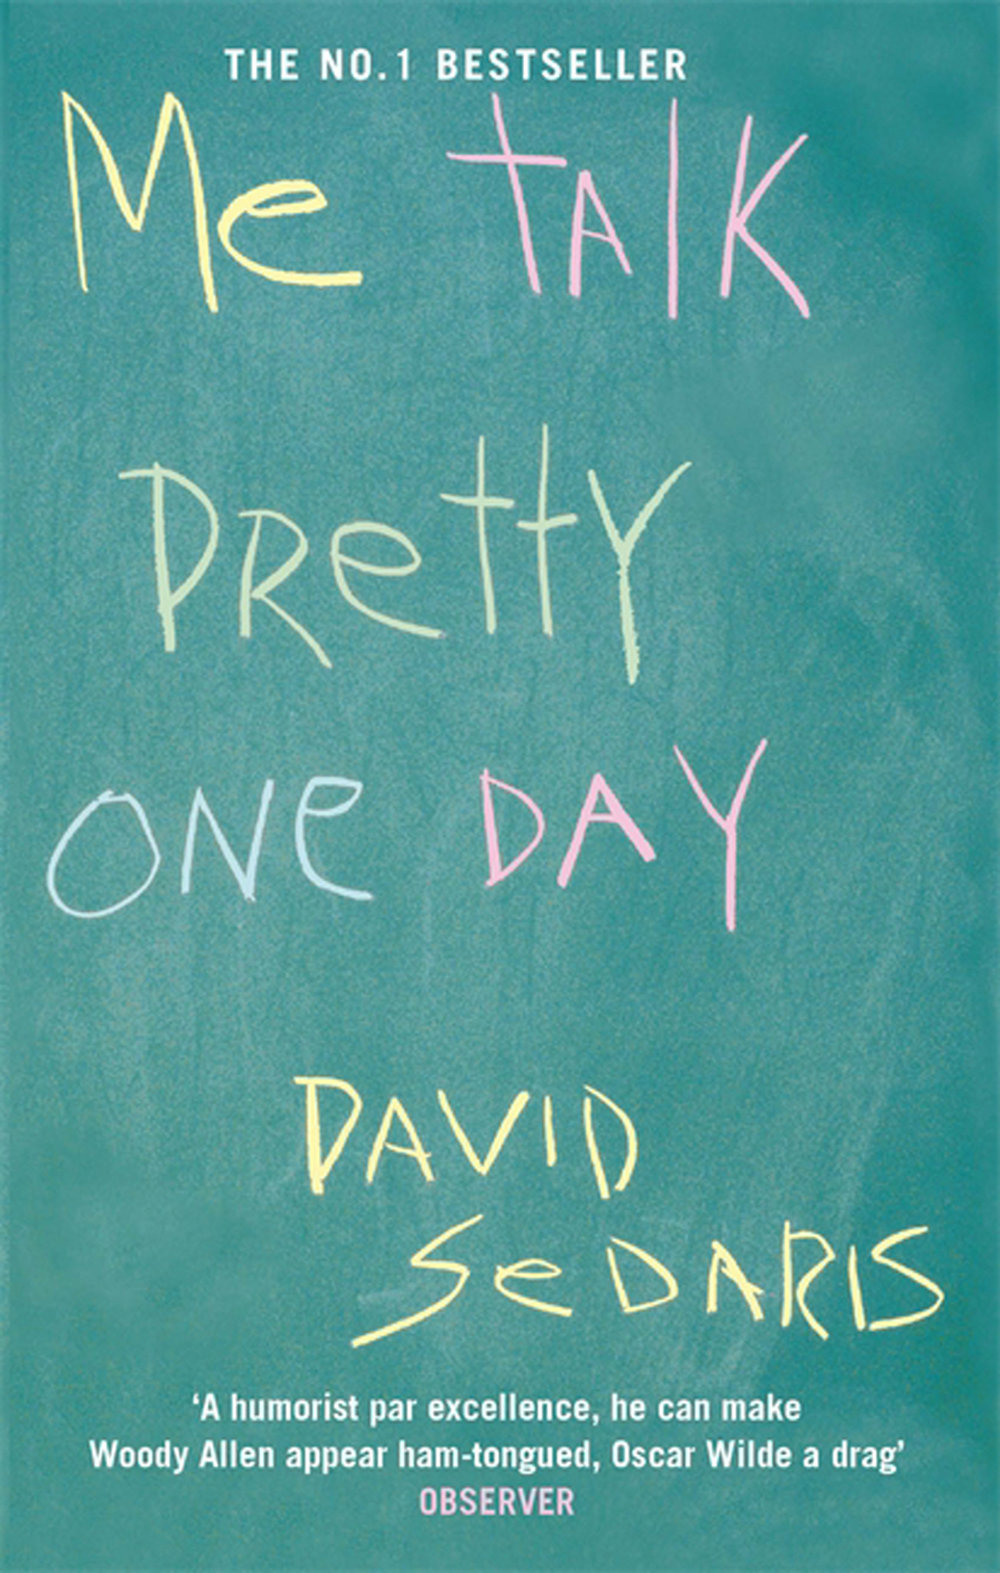 me talk pretty one day by david sedaris.jpg